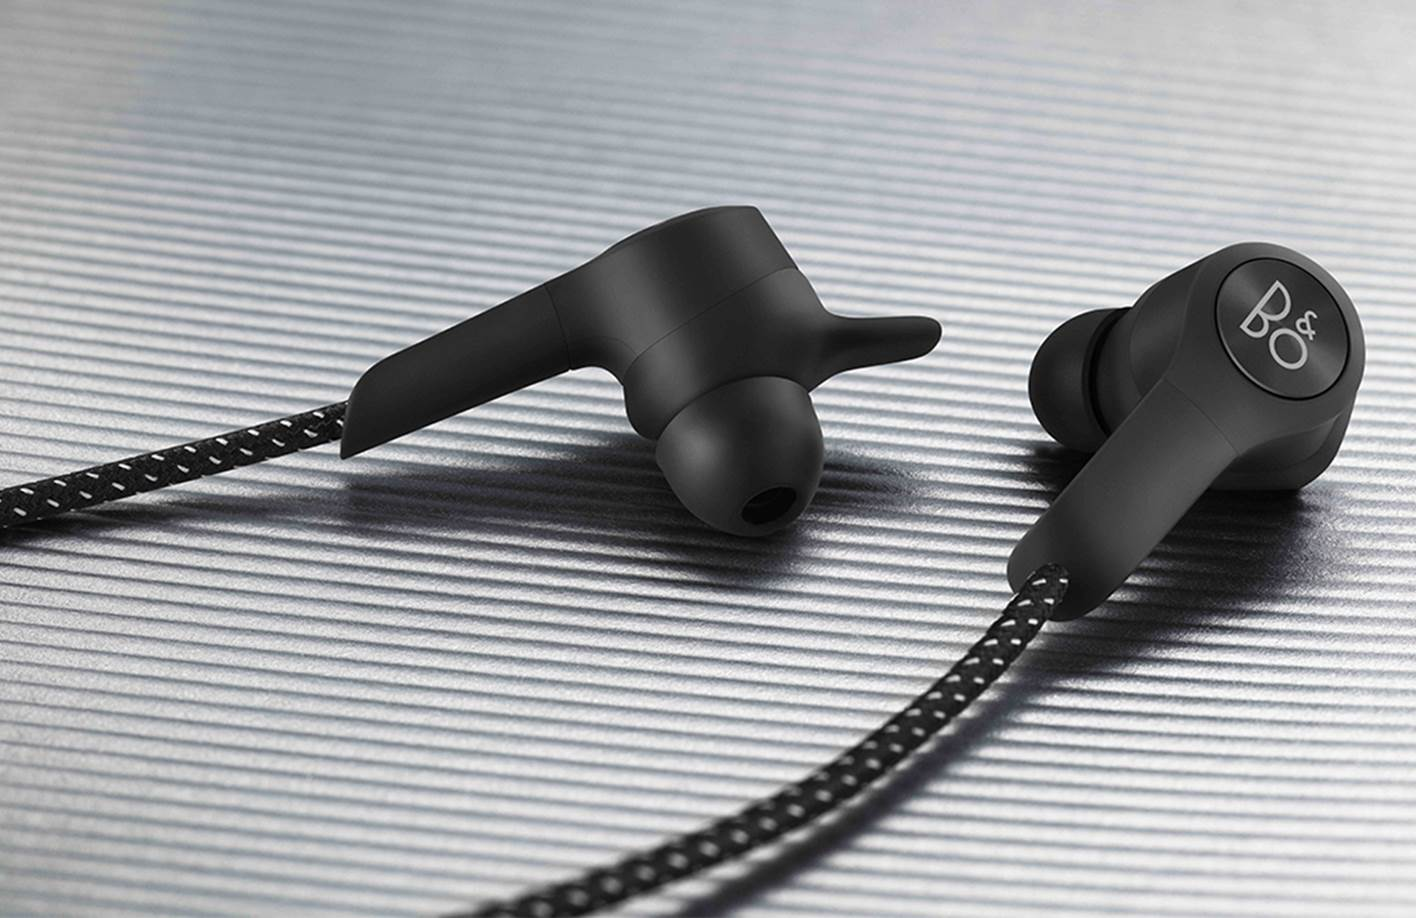 B&O BeoPlay E6 High-End Earbuds